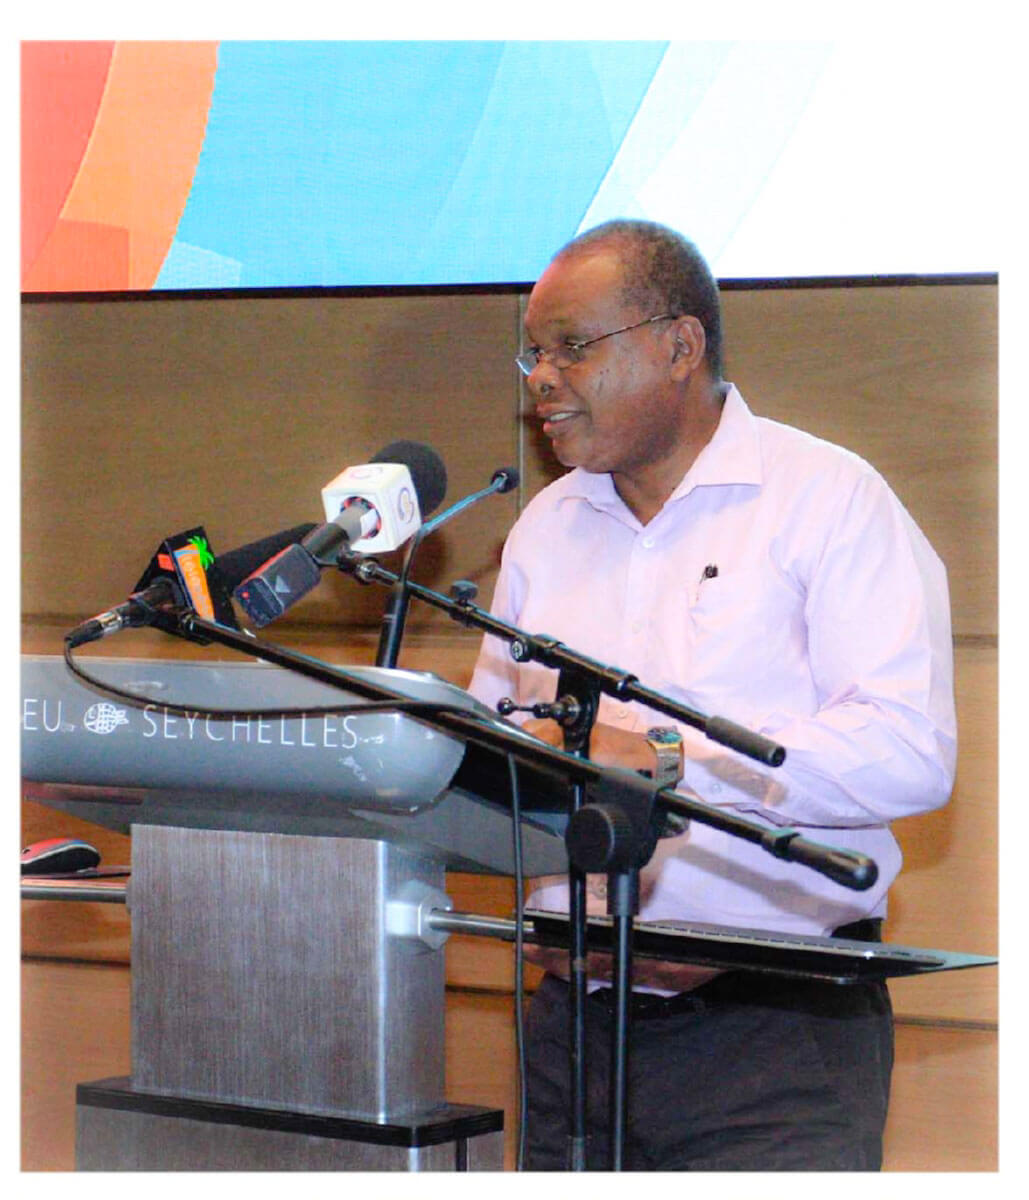 Seychelles Tourism Minister expresses Satisfaction with Performance